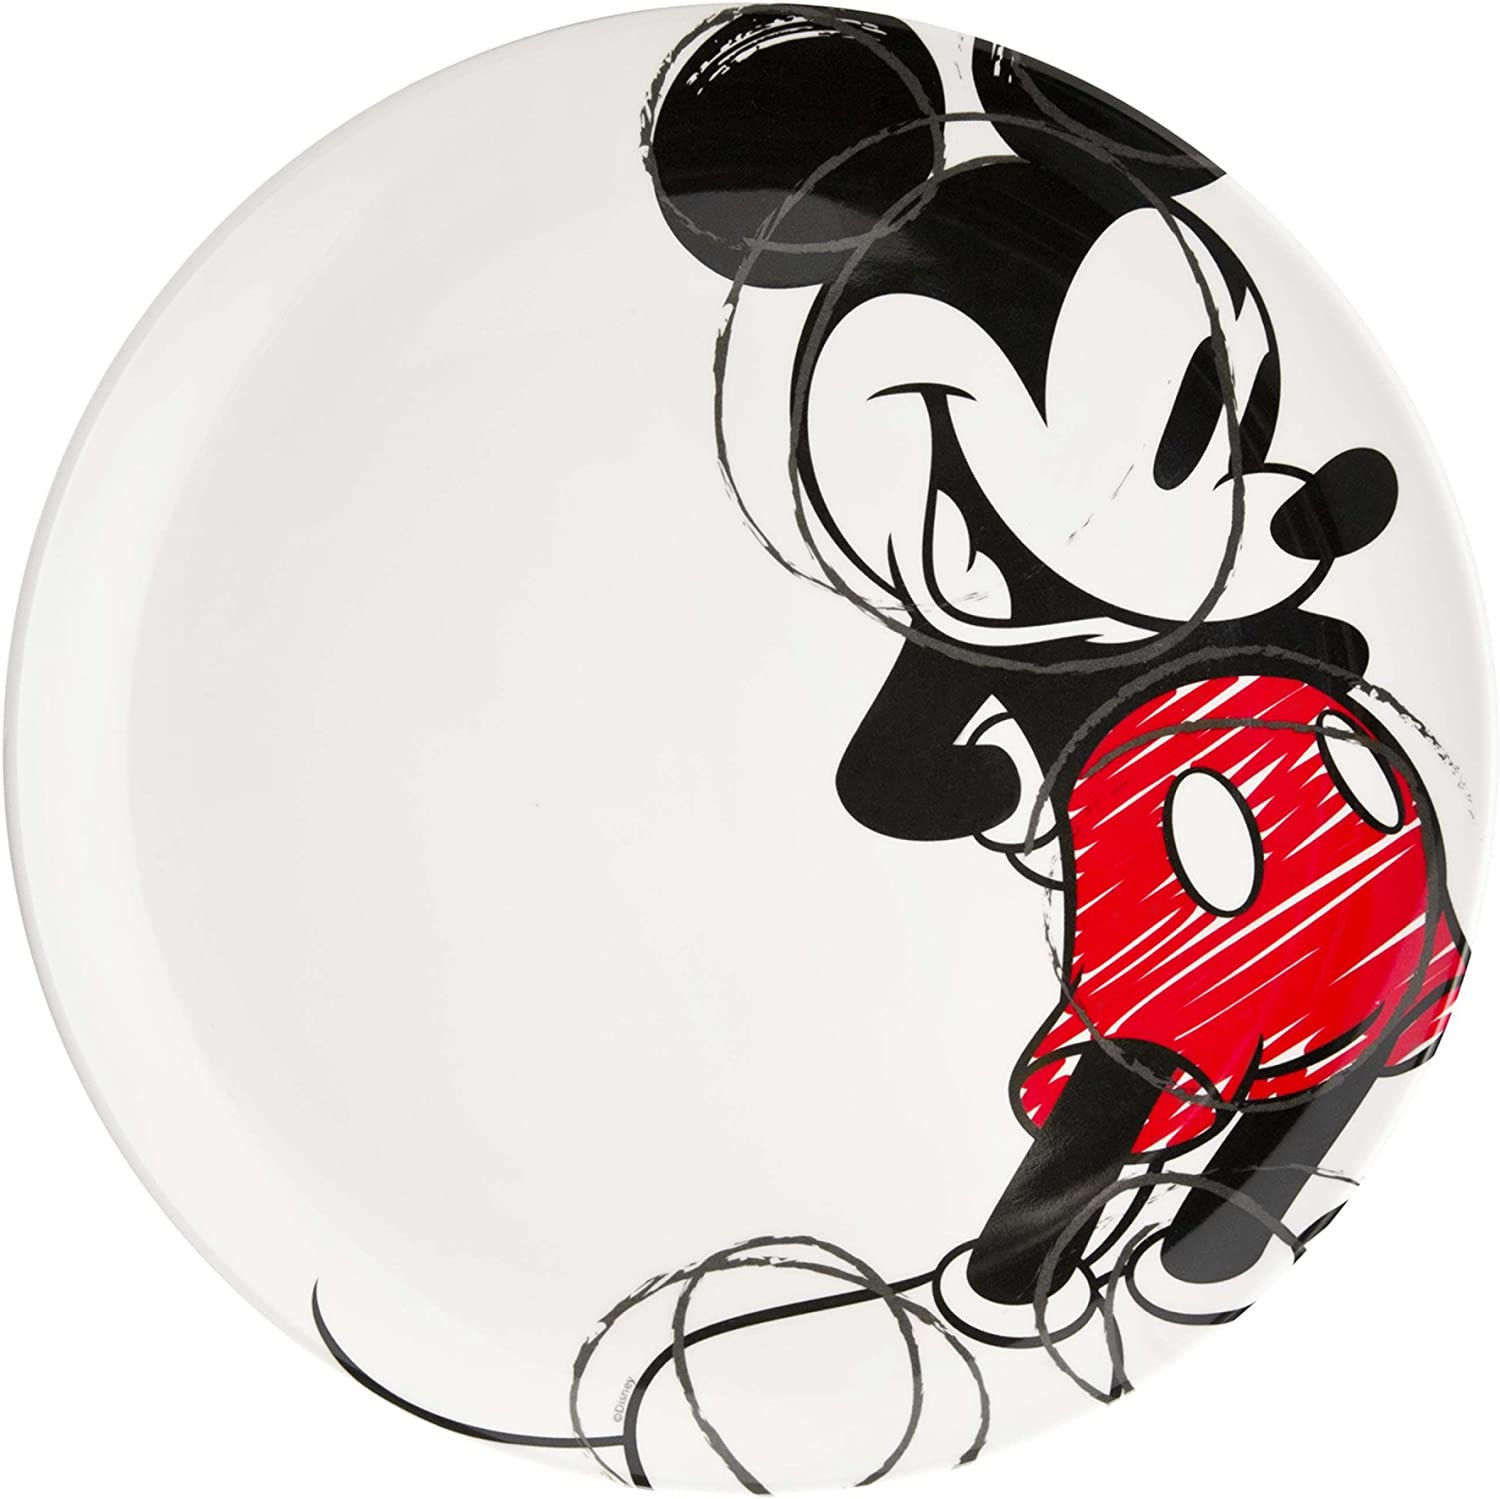 Zak Designs Max 82% OFF Dinner Plate with Graphics Indefinitely Mouse Mickey Reusable